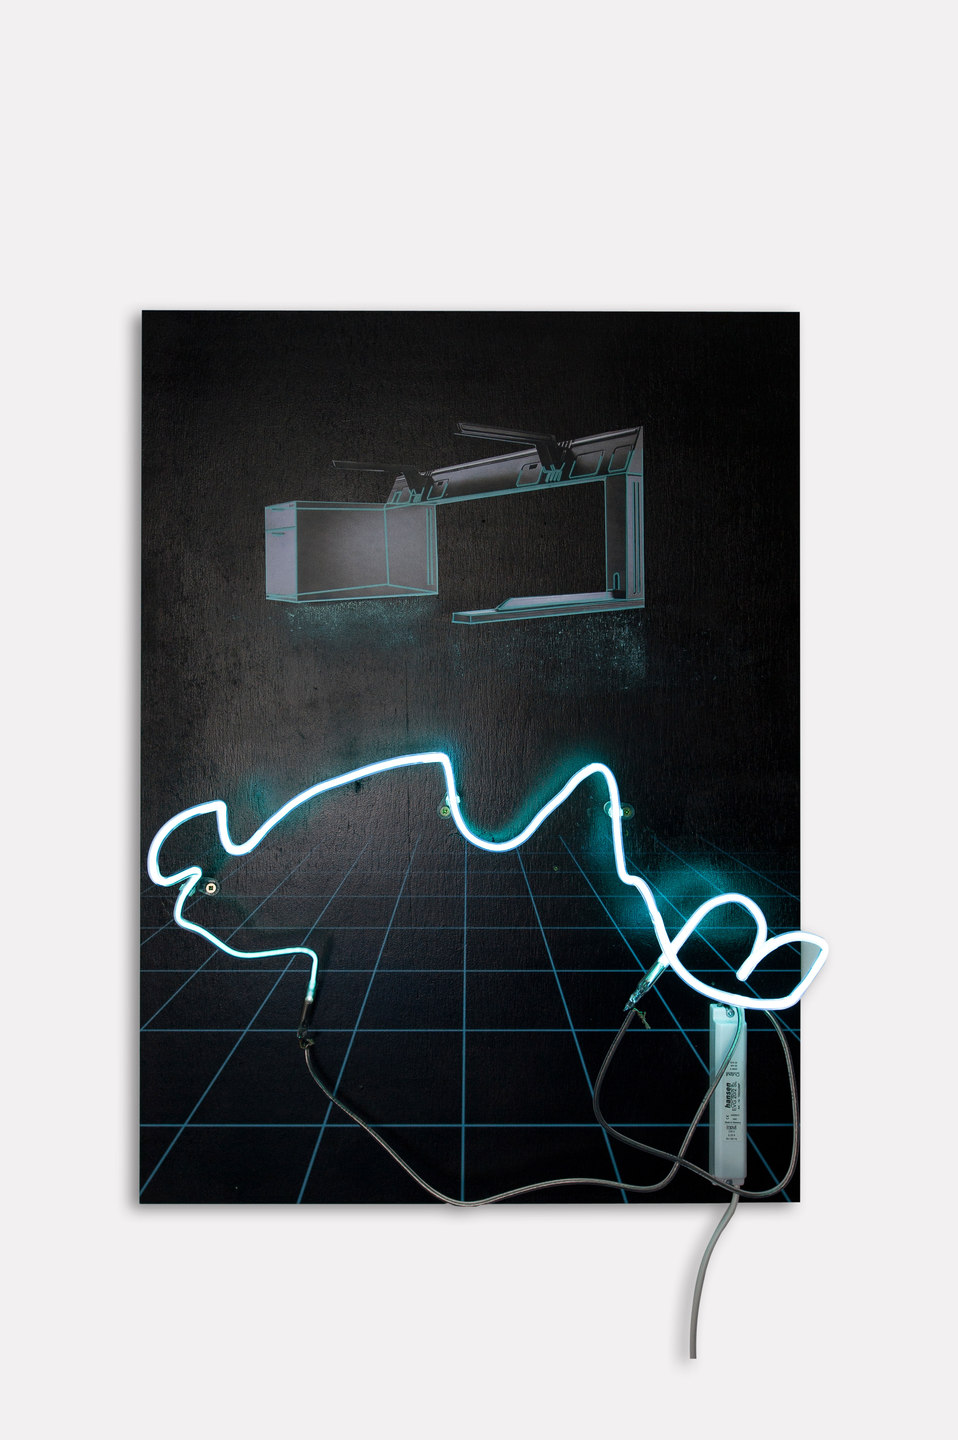 Florian Auer, Not Yet Titled (desk), 2013, print on black board, paper, chalk, neon, transformer, (80 x 59 x 13 cm)